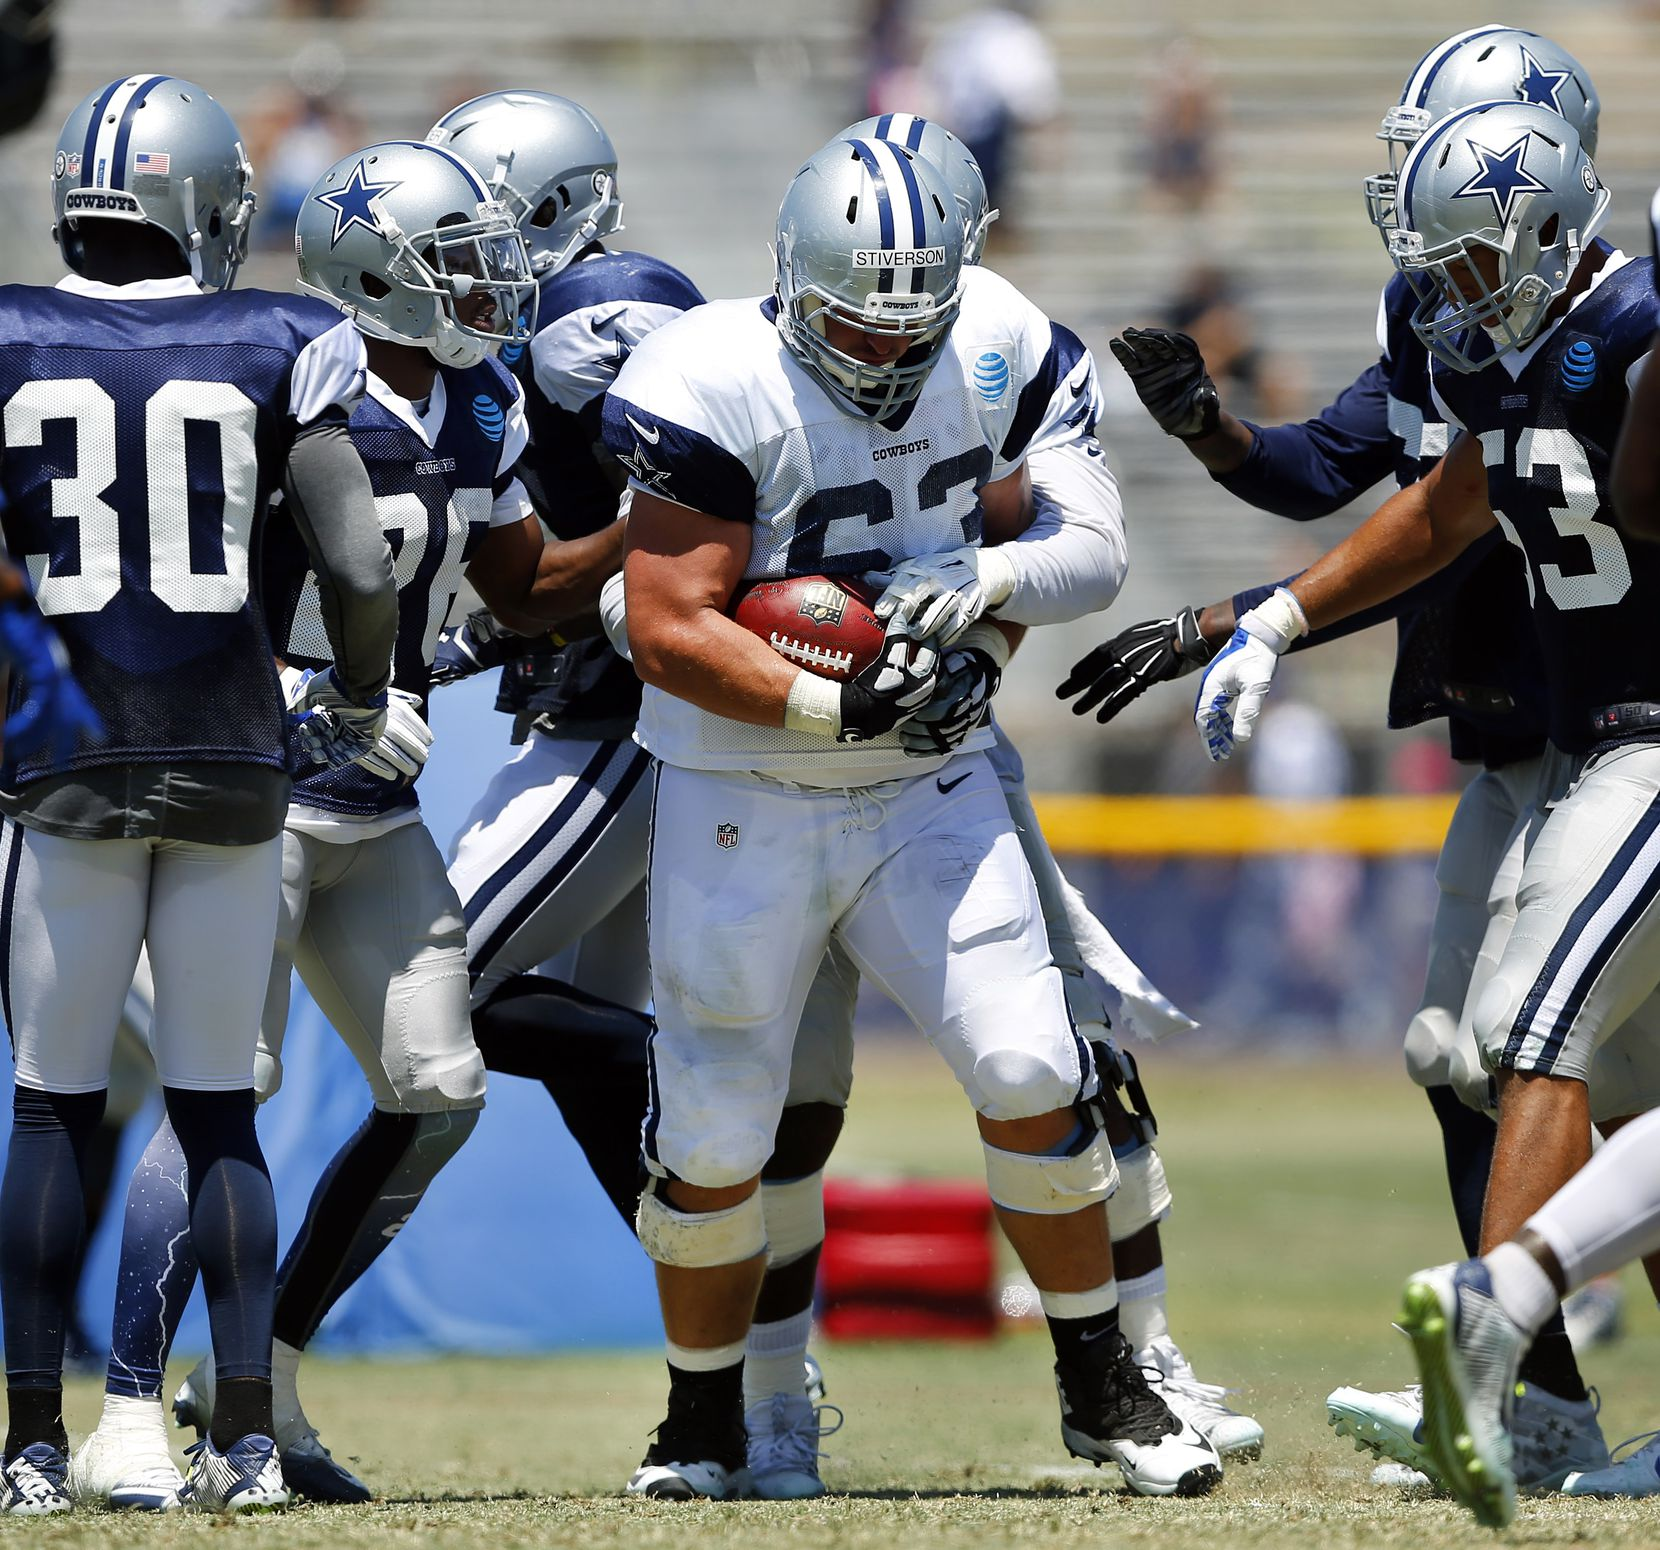 Dallas Cowboys offensive guard Boston Stiverson (63) finds the ball in his hands after a tipped pass at the line of scrimmage during morning practice at training camp in Oxnard, California, Thursday, August 11, 2016. (Tom Fox/The Dallas Morning News)